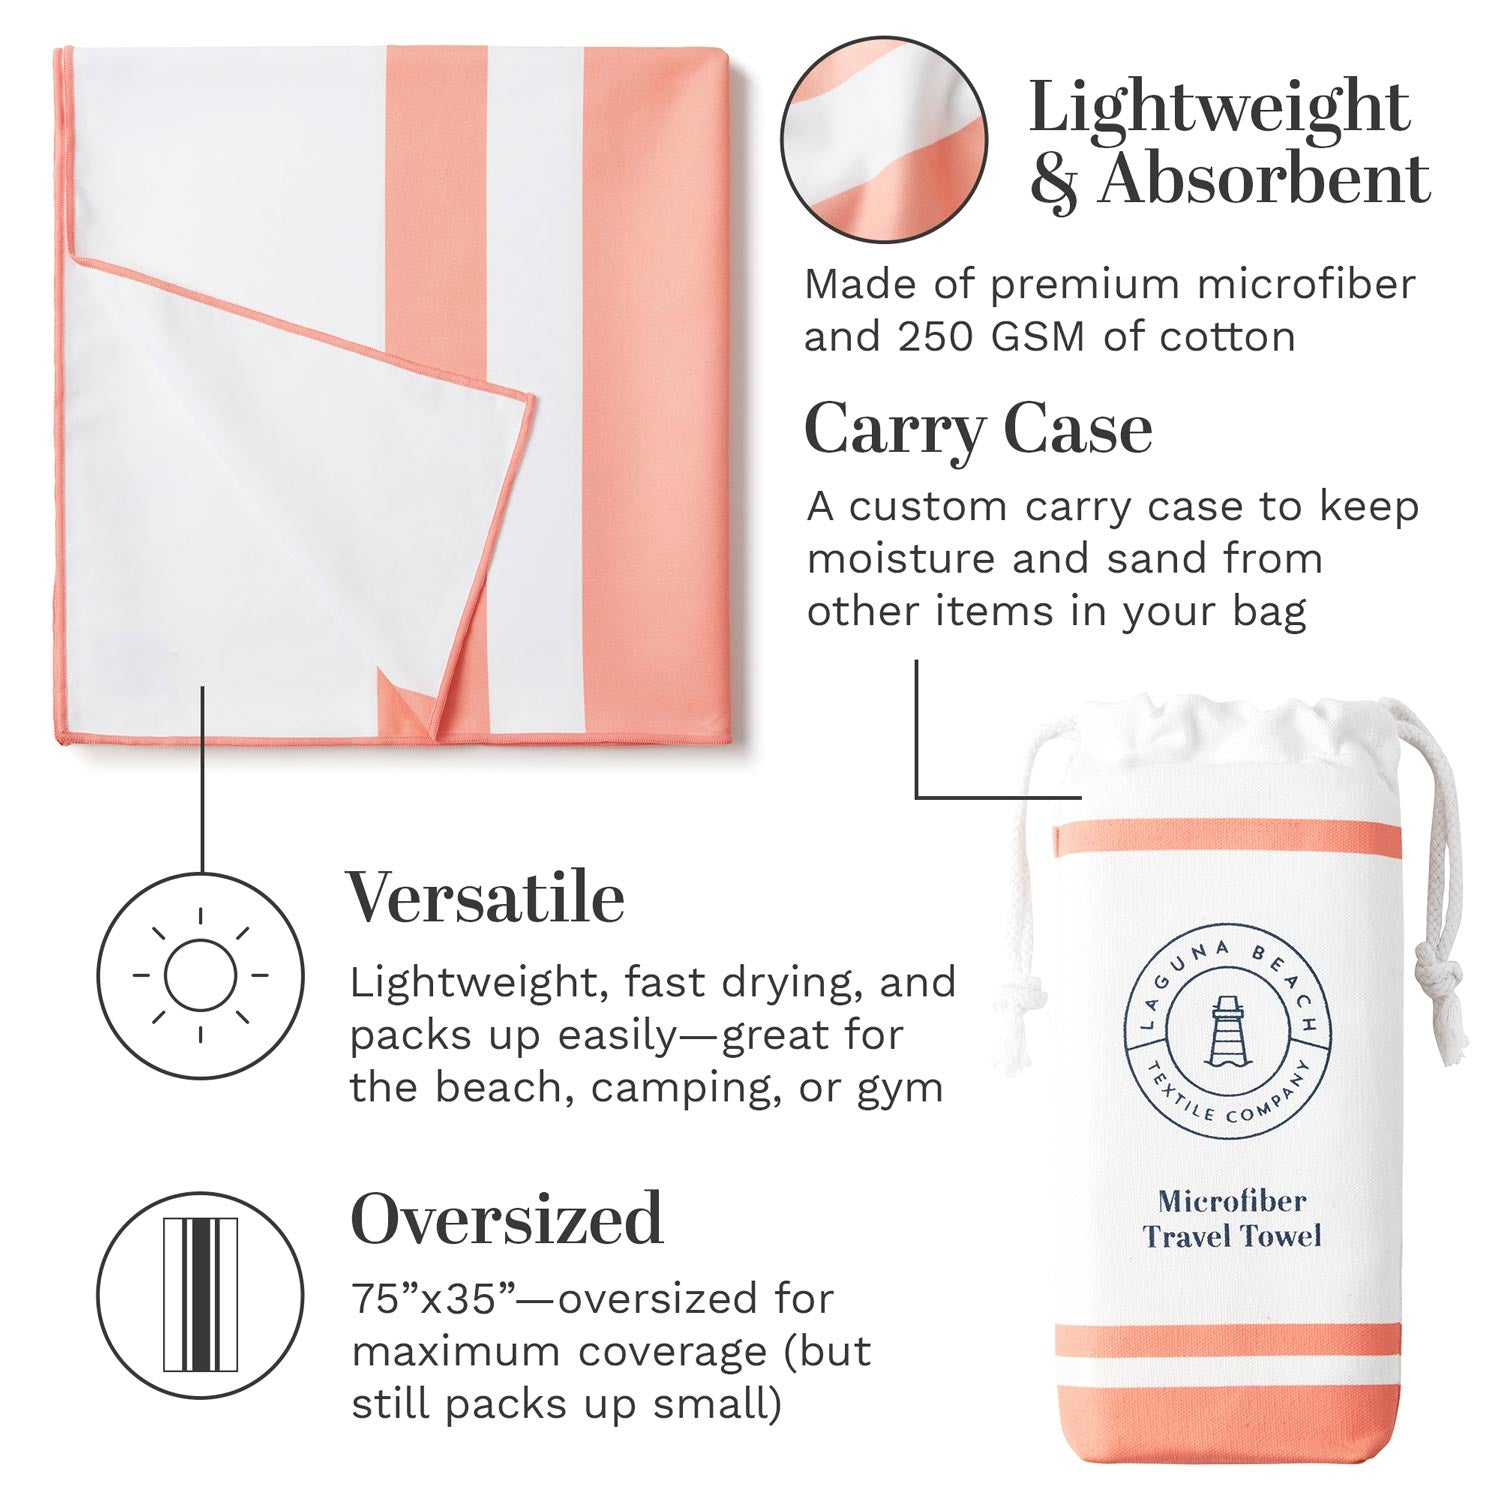 Infographic for coral pink microfiber beach towel highlighting how it is oversized, lightweight, and absorbent.